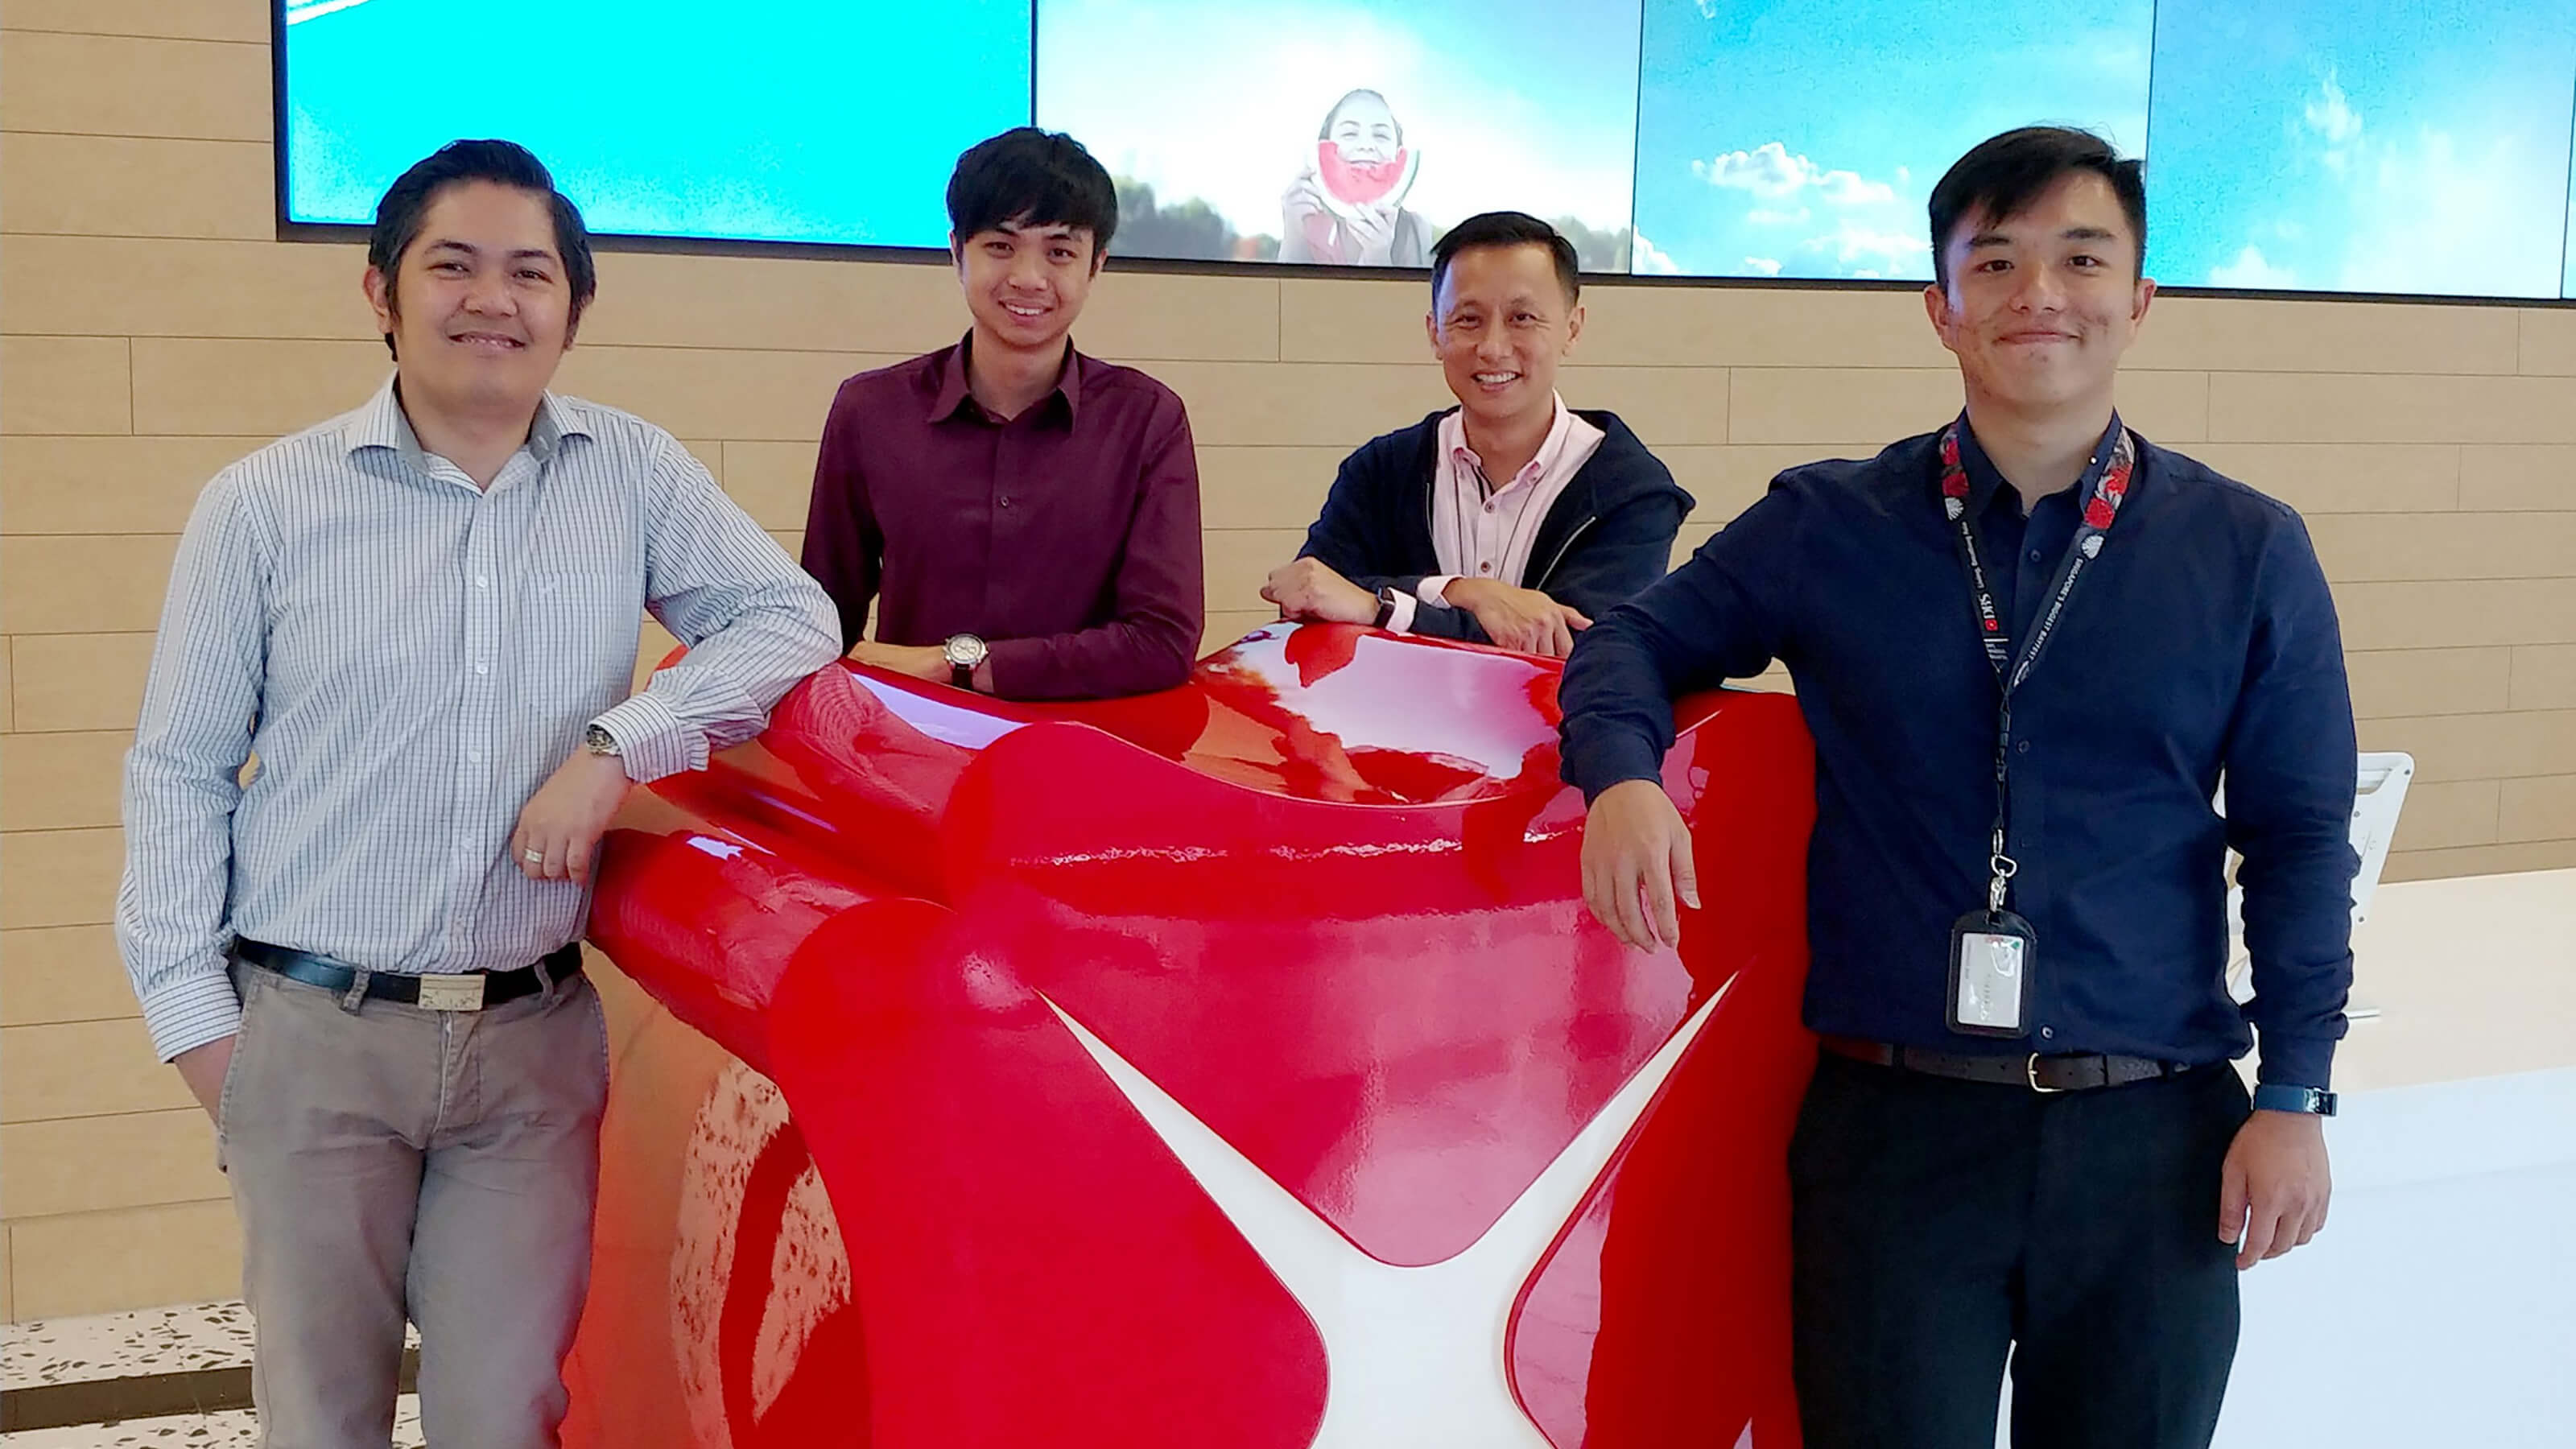 DigiPen (Singapore) alumni izaak Foong and Farris Chua pose with co-workers in DBS Bank lobby